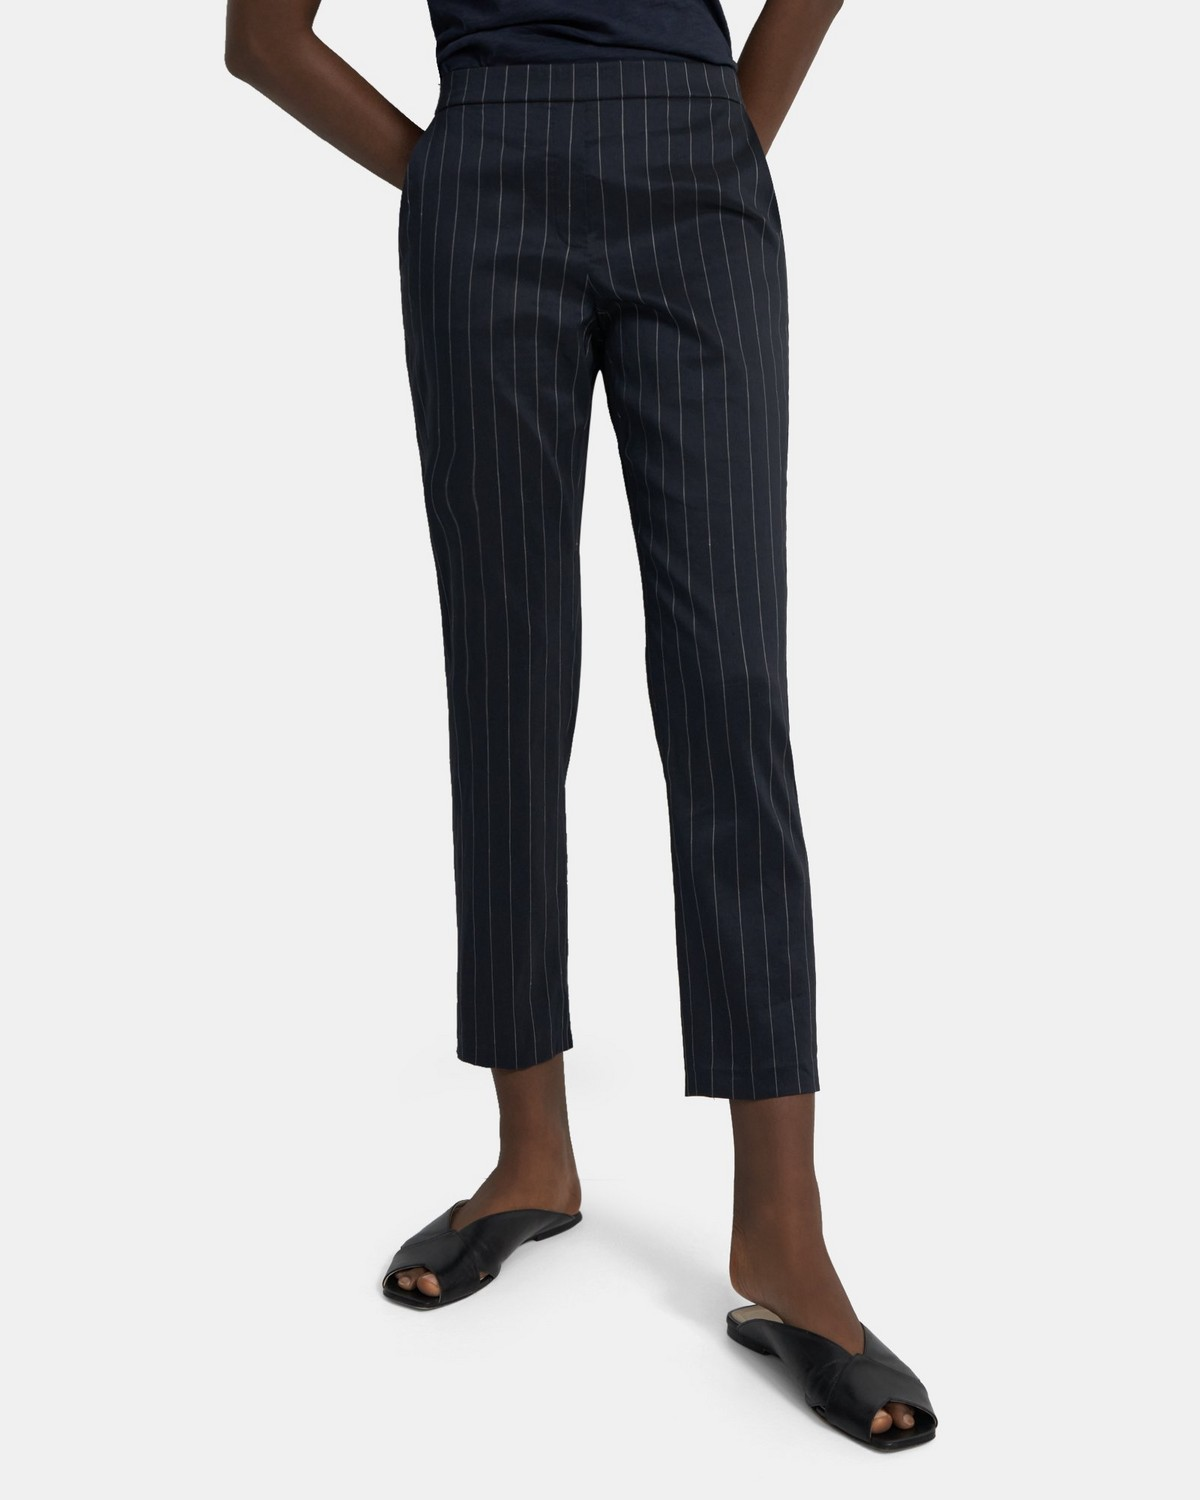 Treeca Pull-On Pant in Pinstripe Linen